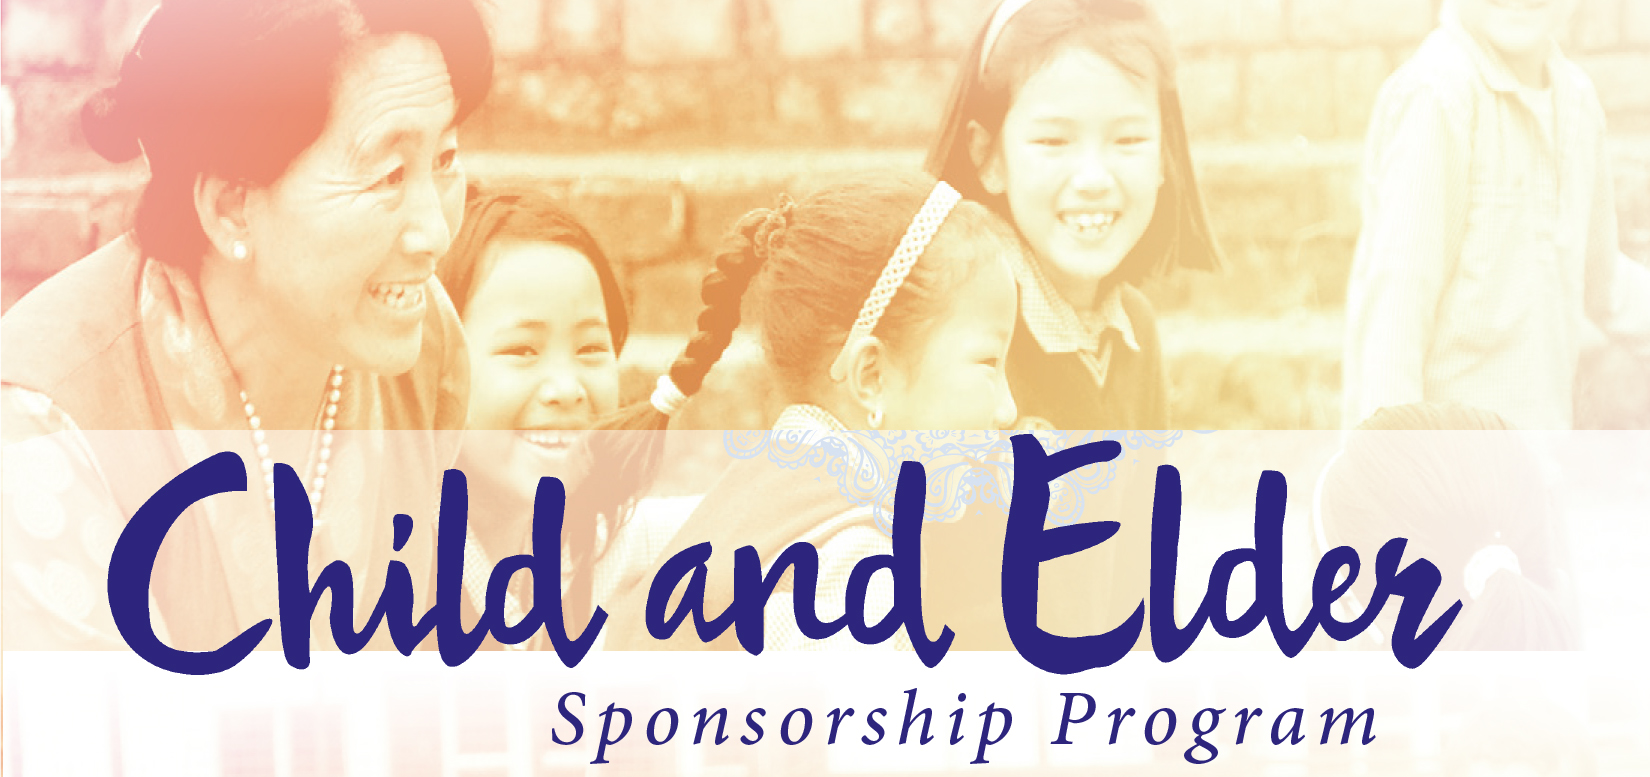 Child and Elder Sponsorship - Frequently Asked Questions